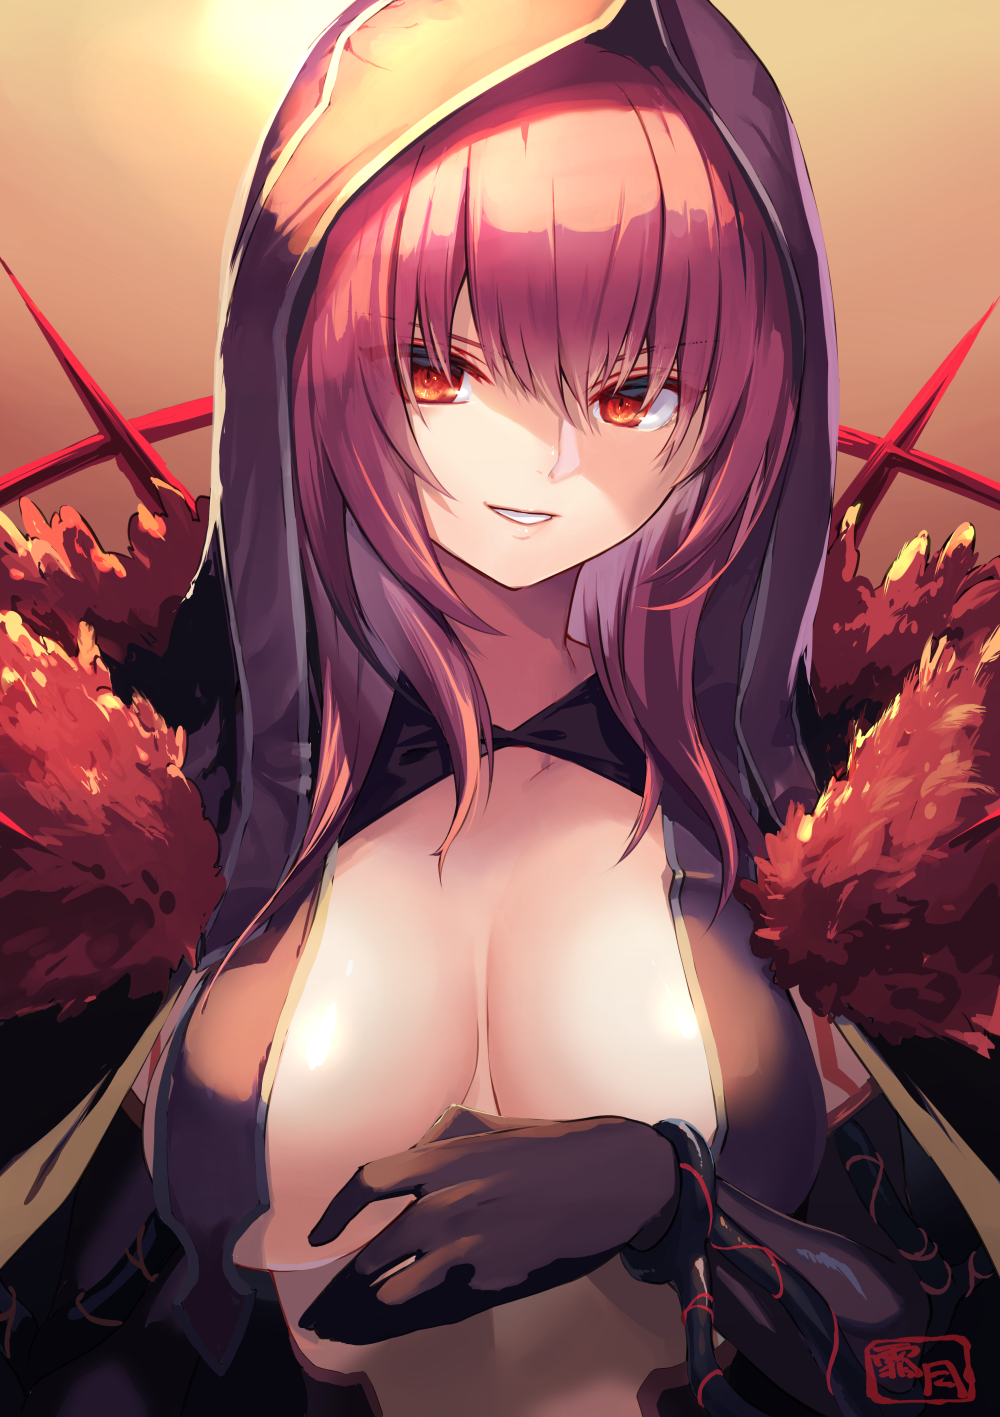 1girl bangs breast_curtains breasts fate/grand_order fate_(series) fur_collar gloves gradient gradient_background highres hood hood_up large_breasts long_hair looking_at_viewer purple_hair red_eyes scathach_(fate)_(all) scathach_(fate/grand_order) shimotsuki_shio smile spikes